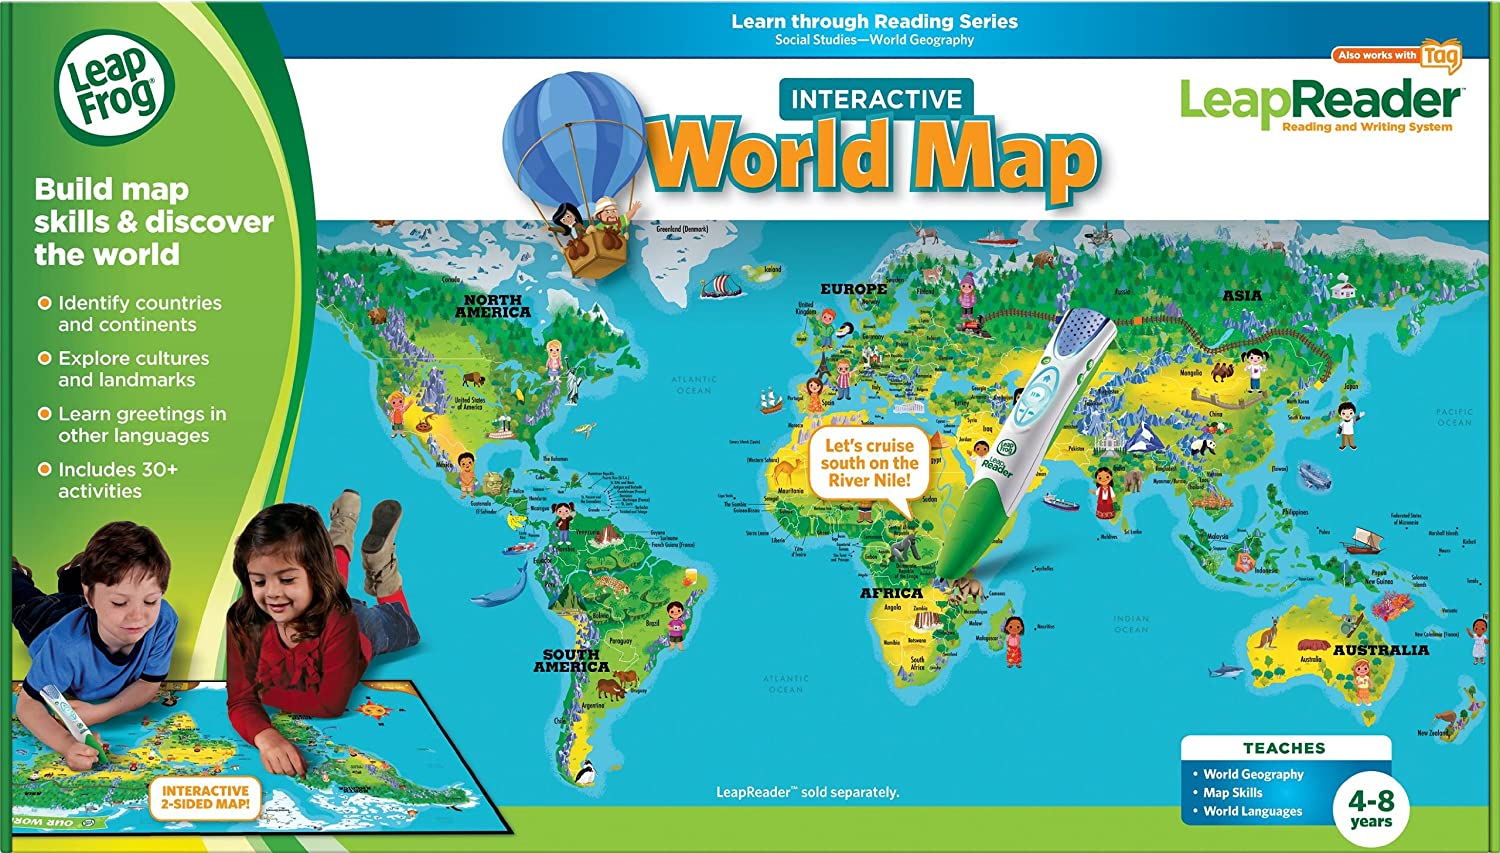 Barefoot world atlas a beautifully interactive globe interactive leapfrog leapreader interactive world map works with tag gumiabroncs Choice Image